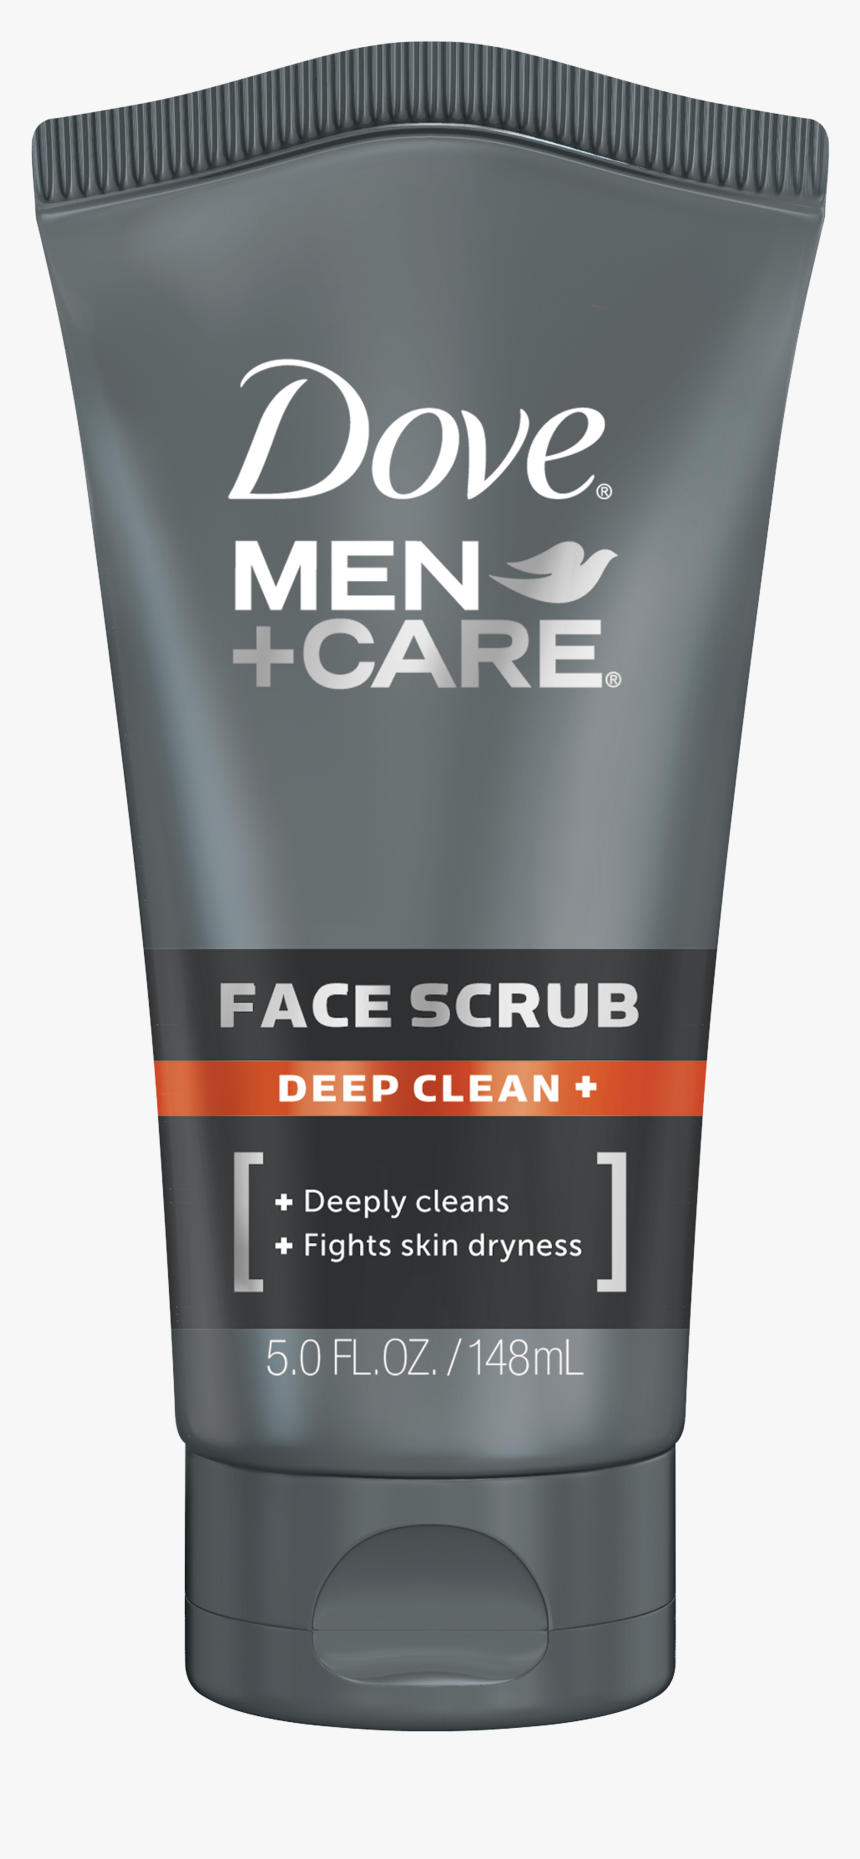 Dove Men Care Deep Clean Face Scrub 5 Oz - Dove Men Care Hydrate Face Wash, HD Png Download, Free Download